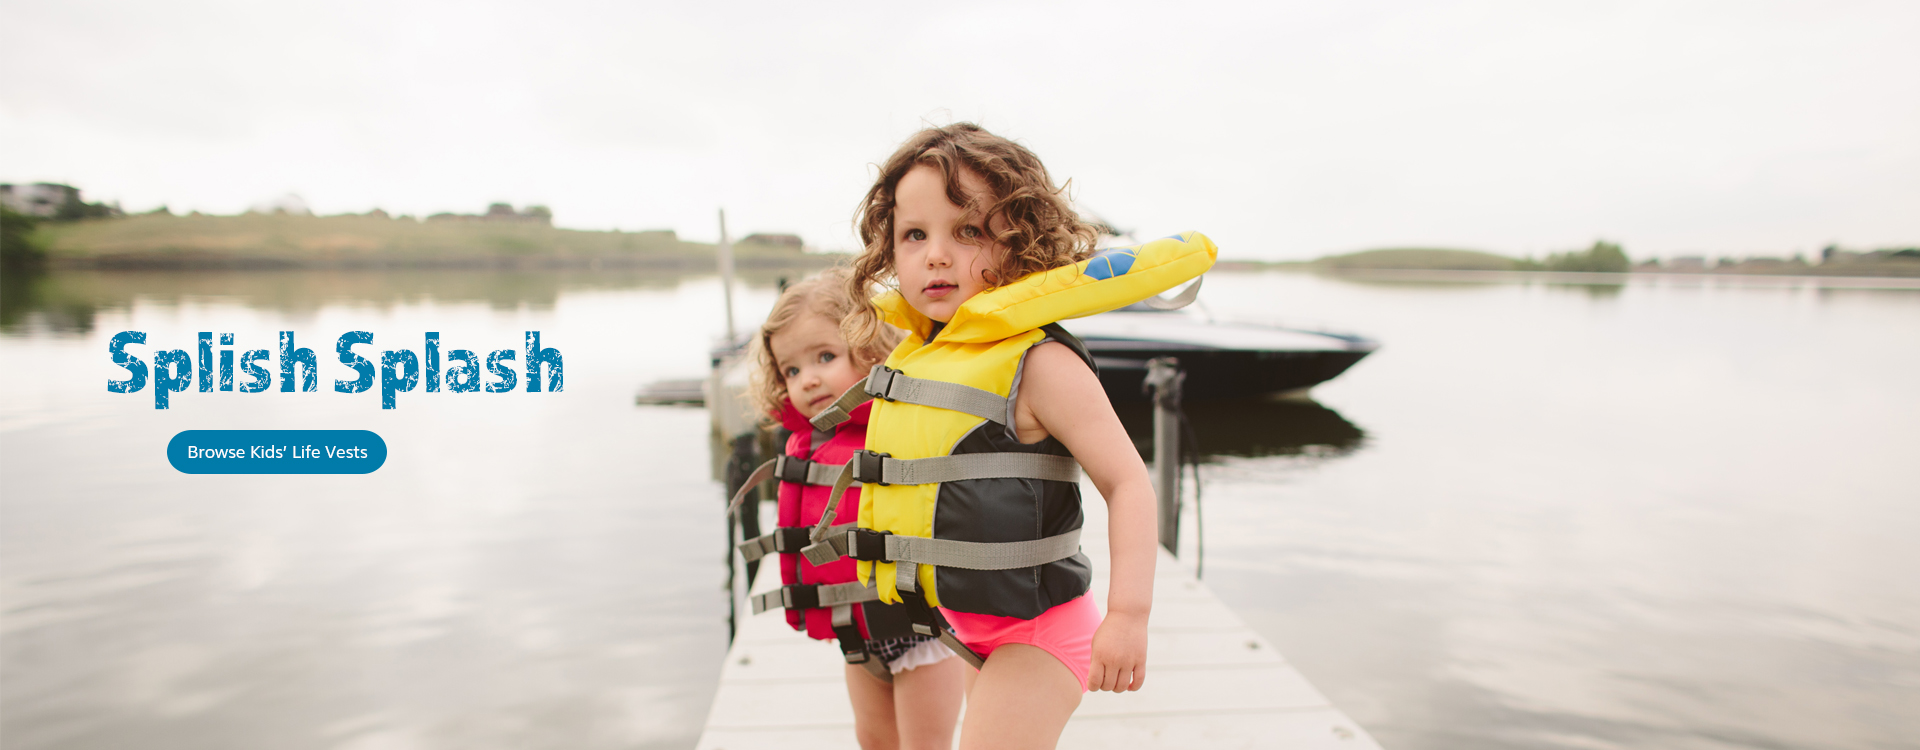 Browse Kids' Life Vests